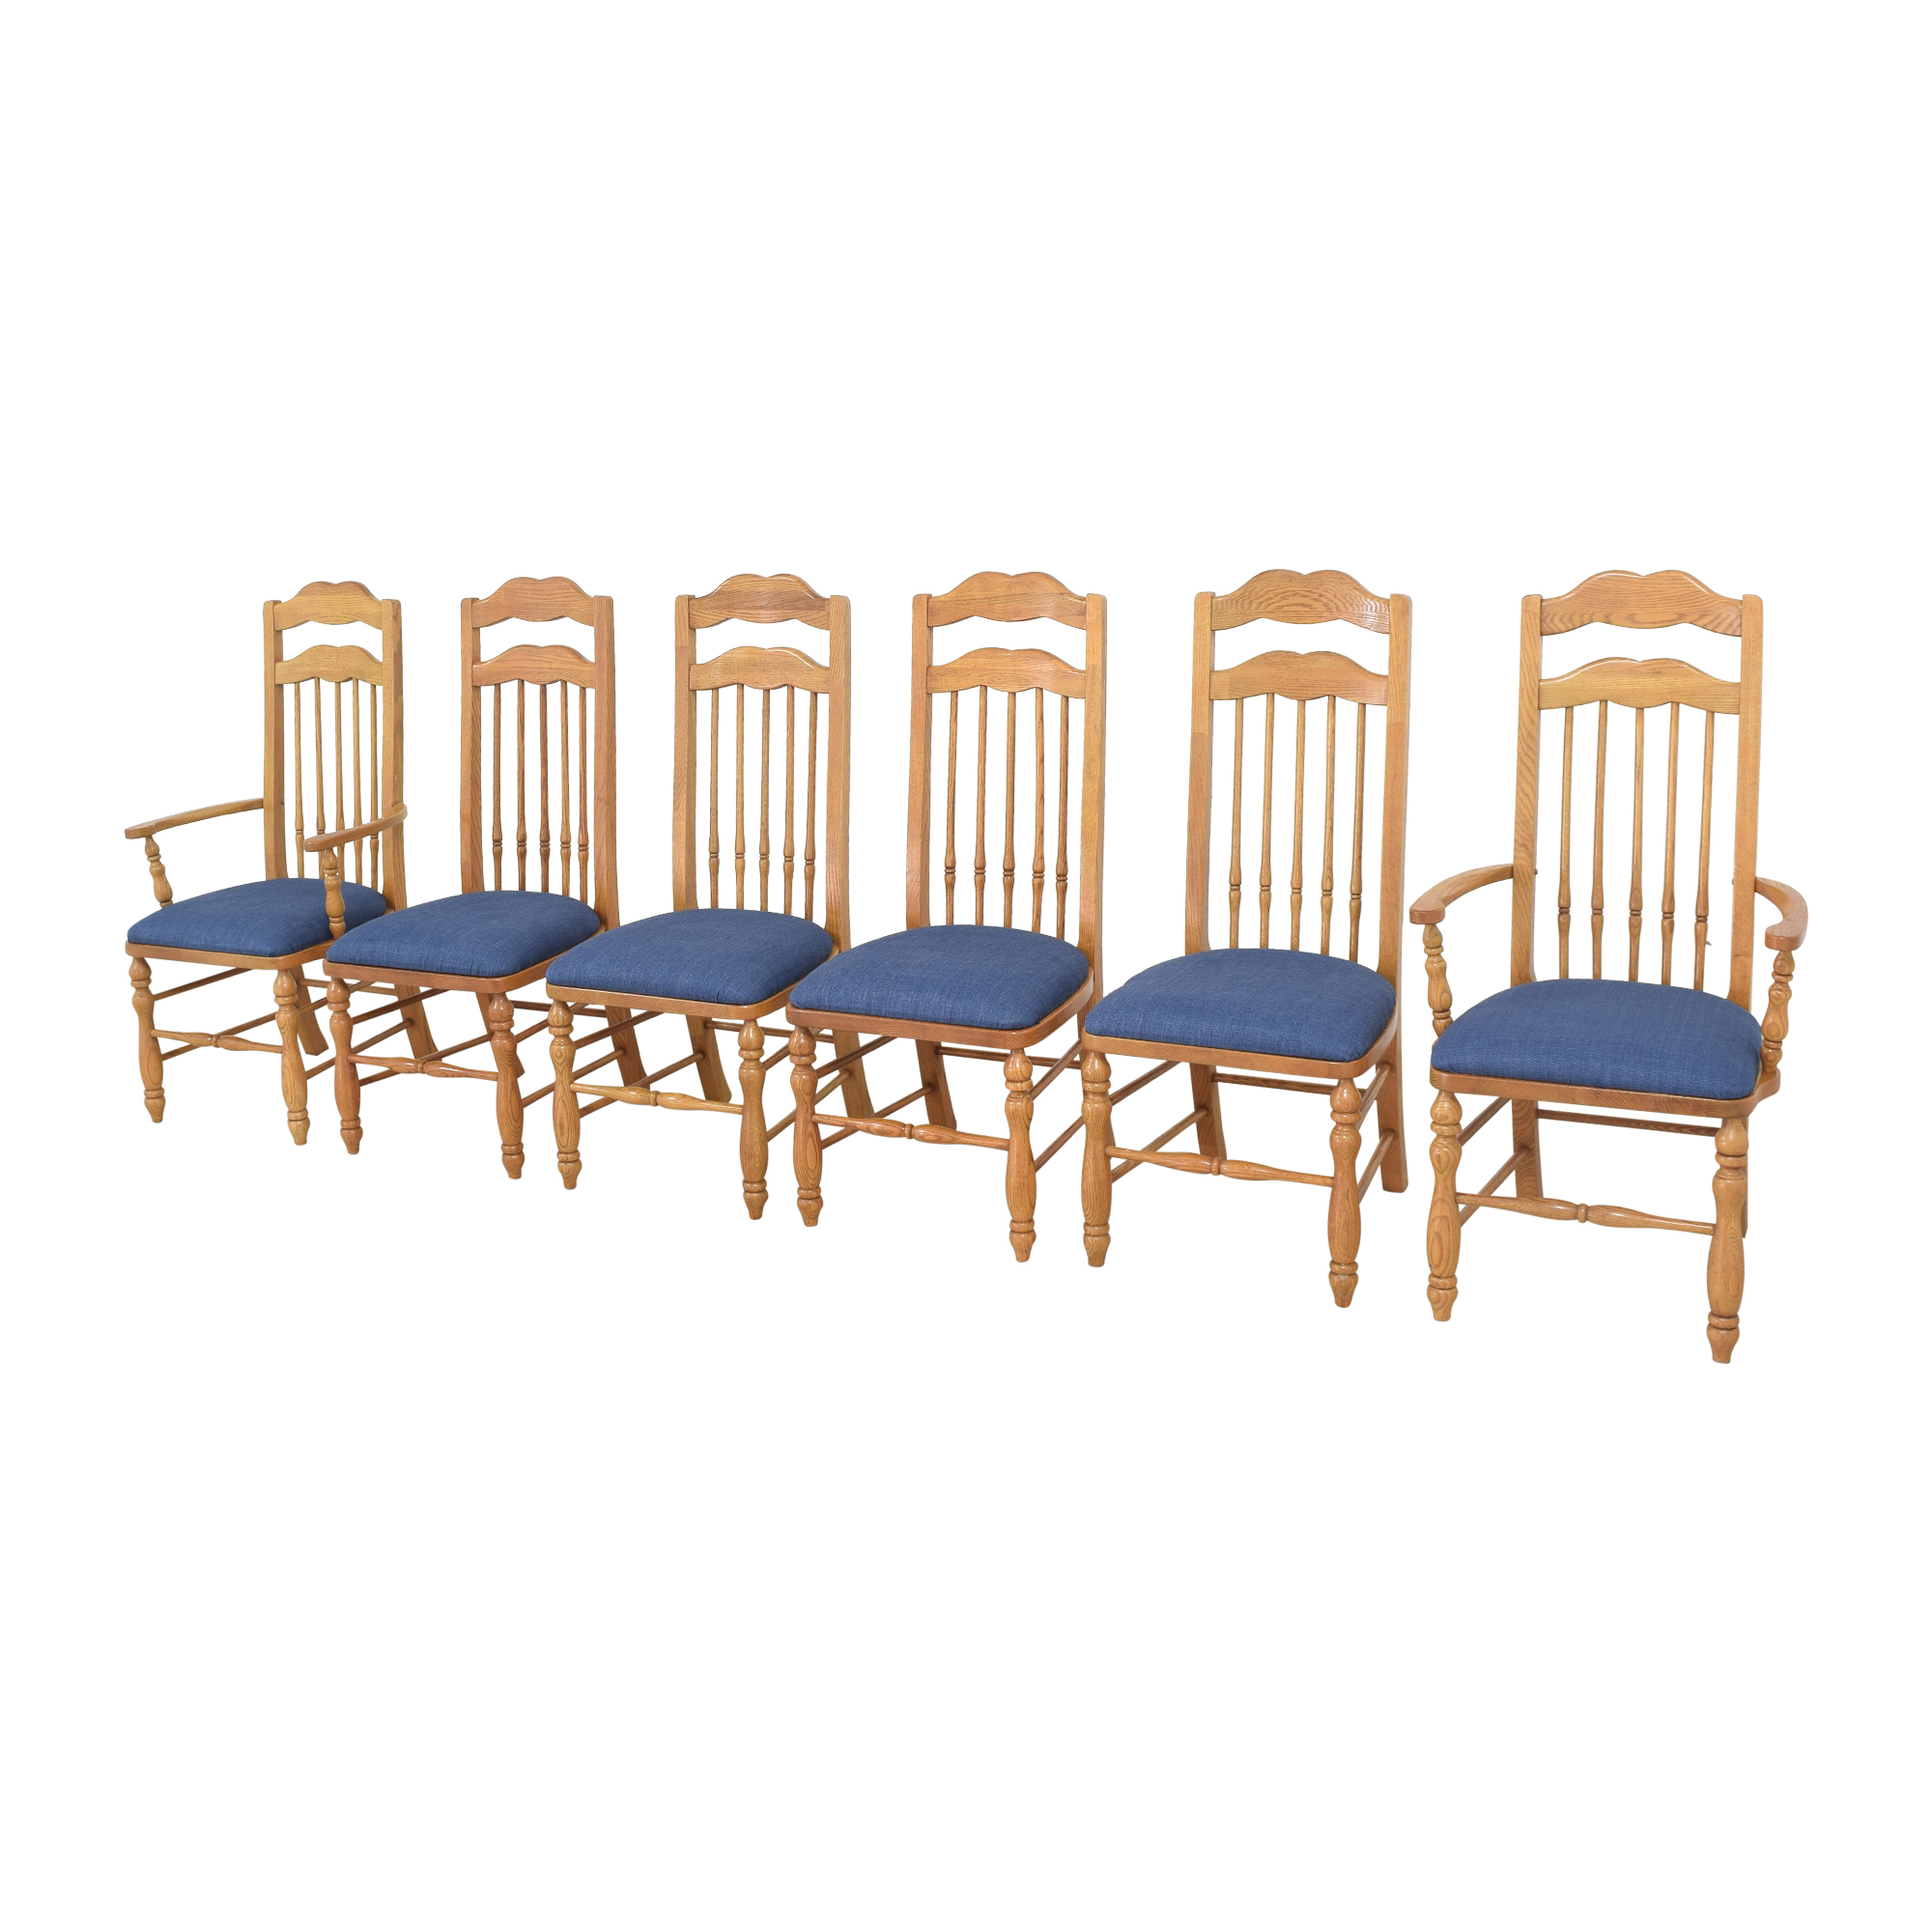 Thomasville High Back Dining Chairs / Dining Chairs